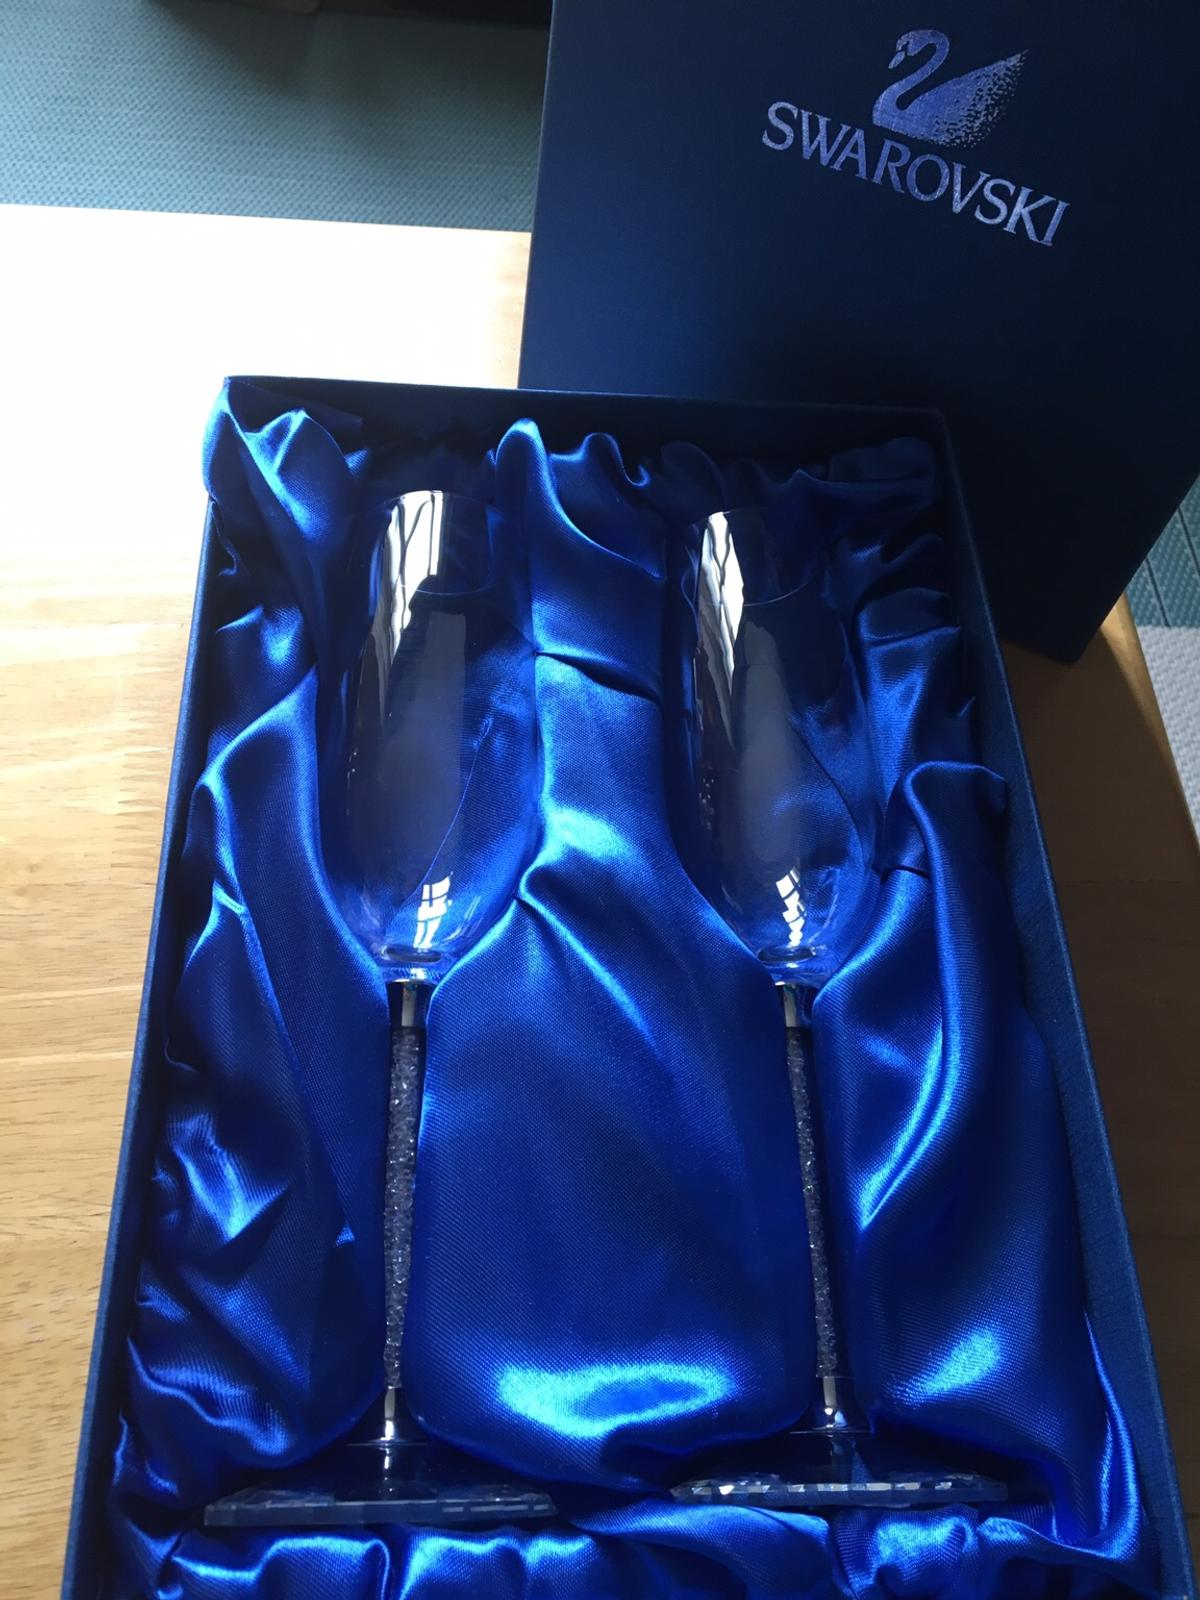 Swarovski Champagne flutes in Box New Cash on collection in Central London or can post it for £3,95